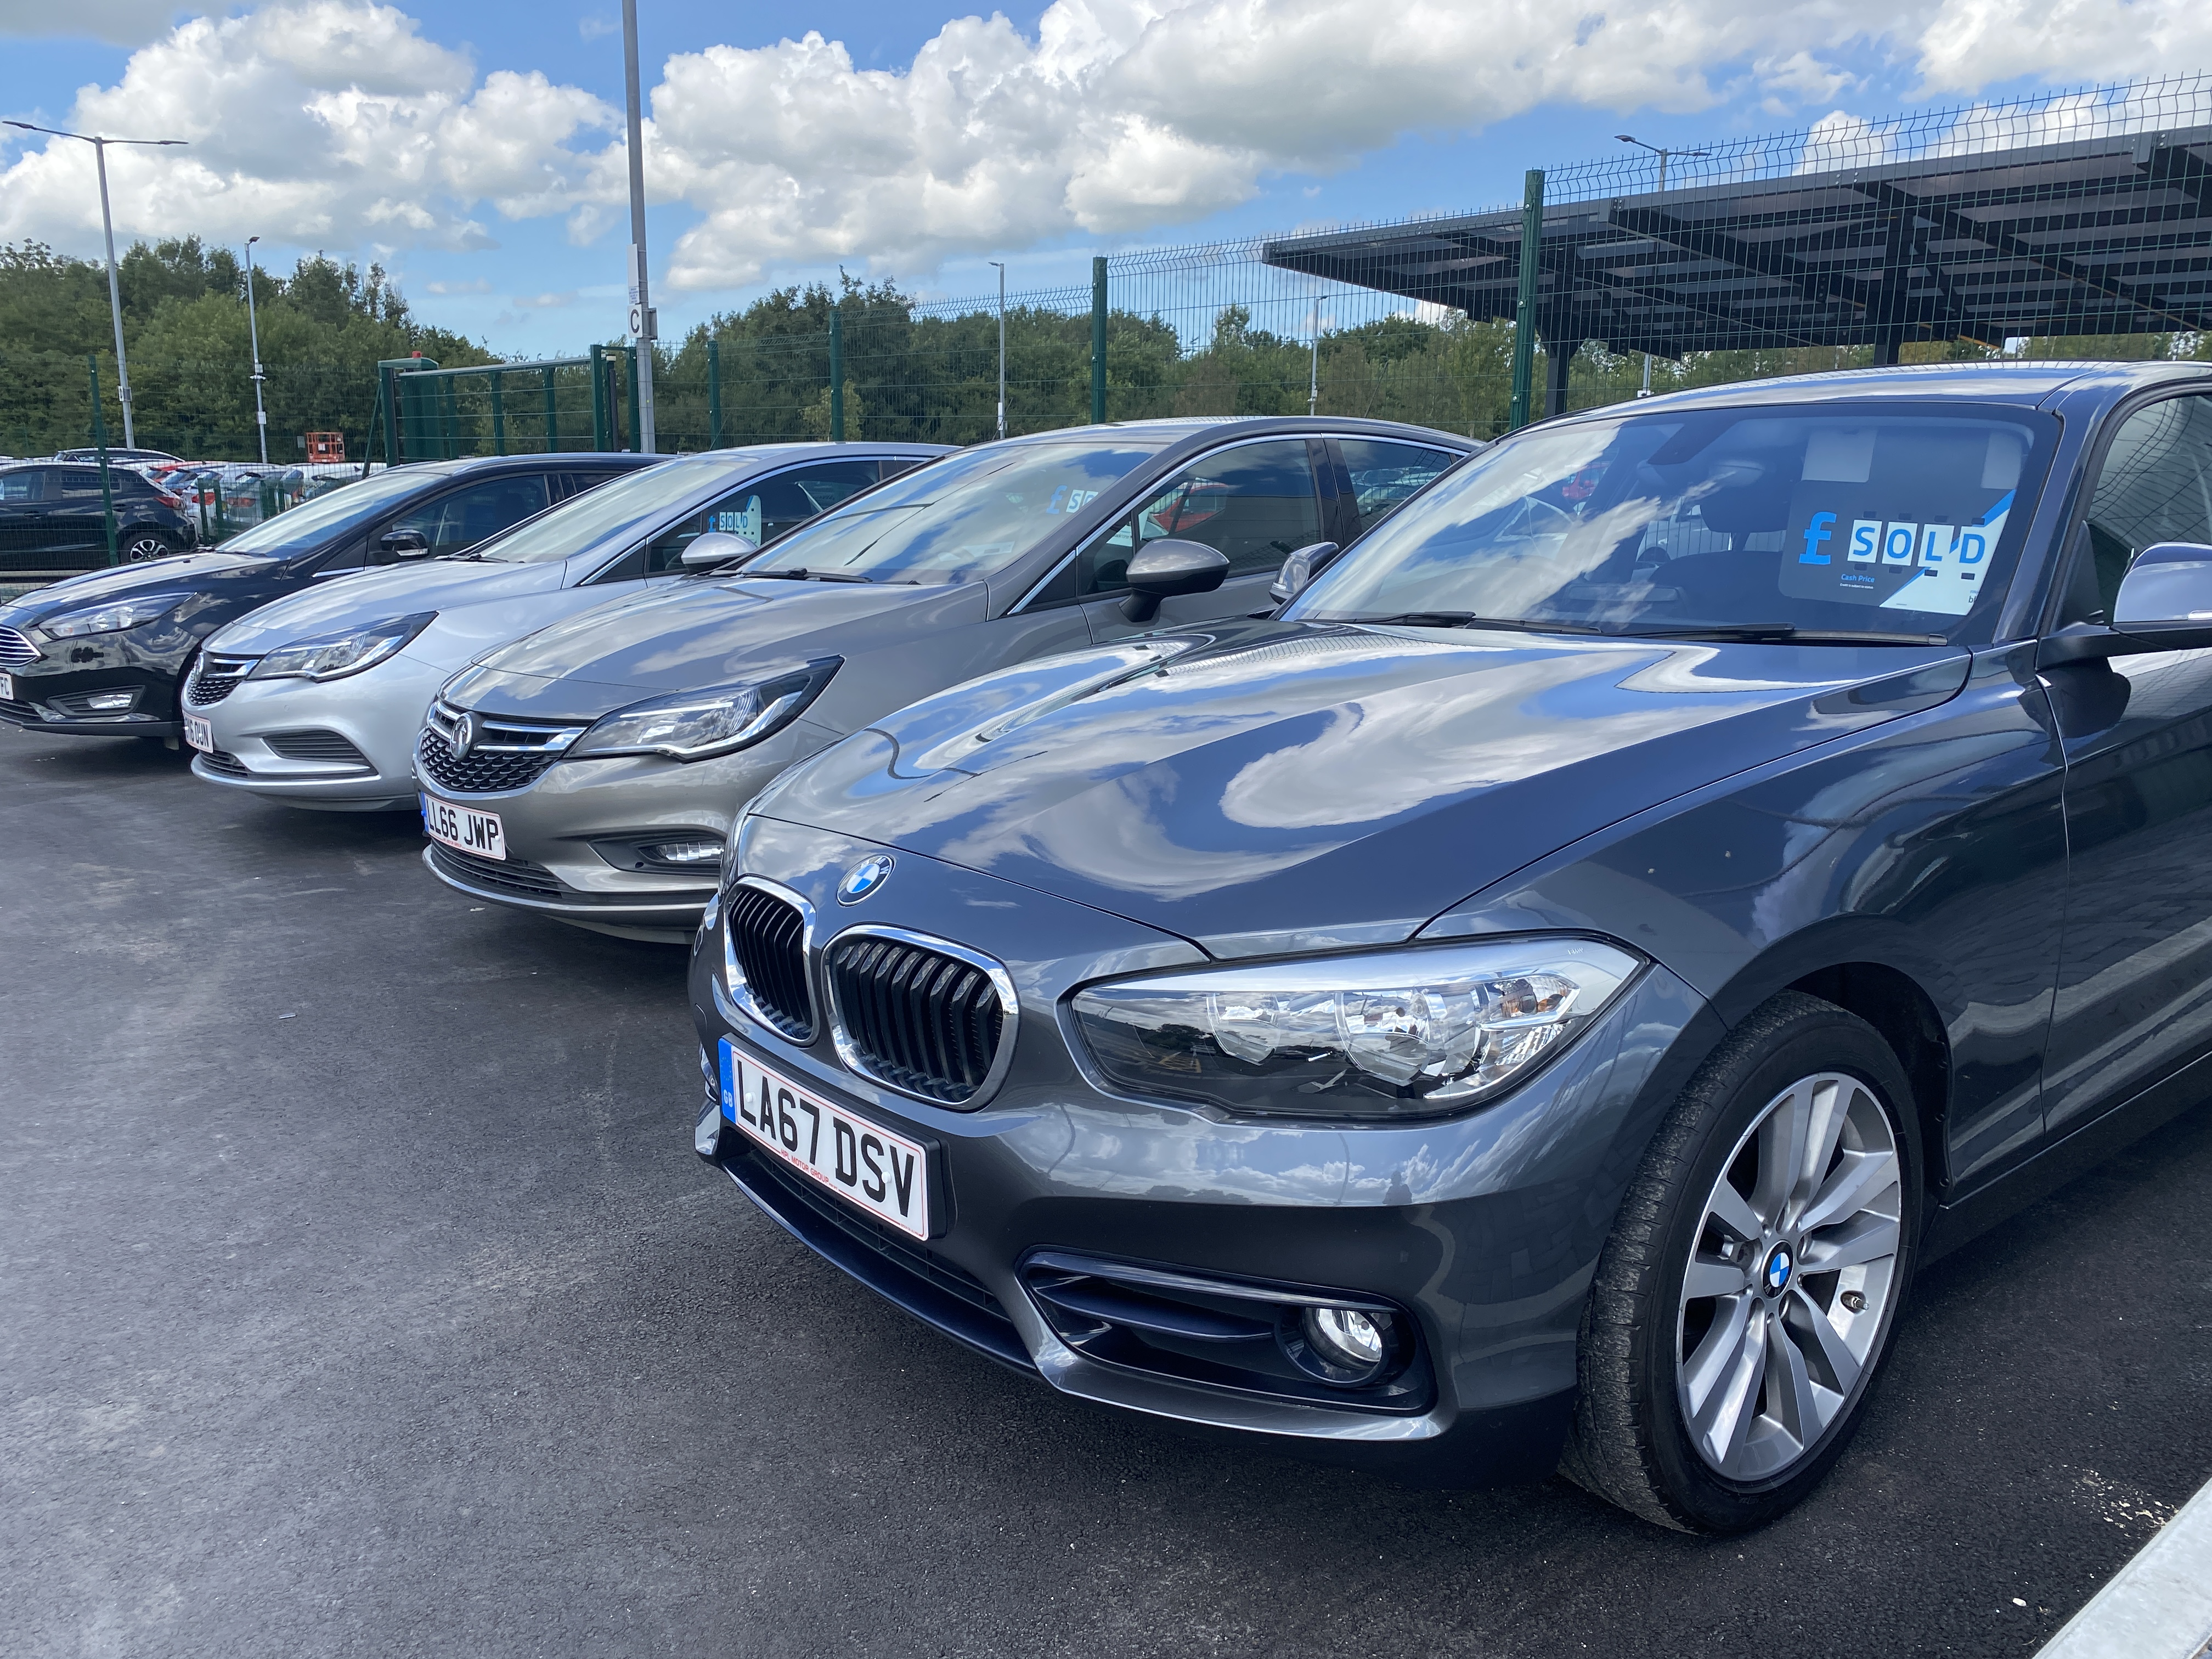 Four cars parked next to each other at a HPL Motors Car Showroom